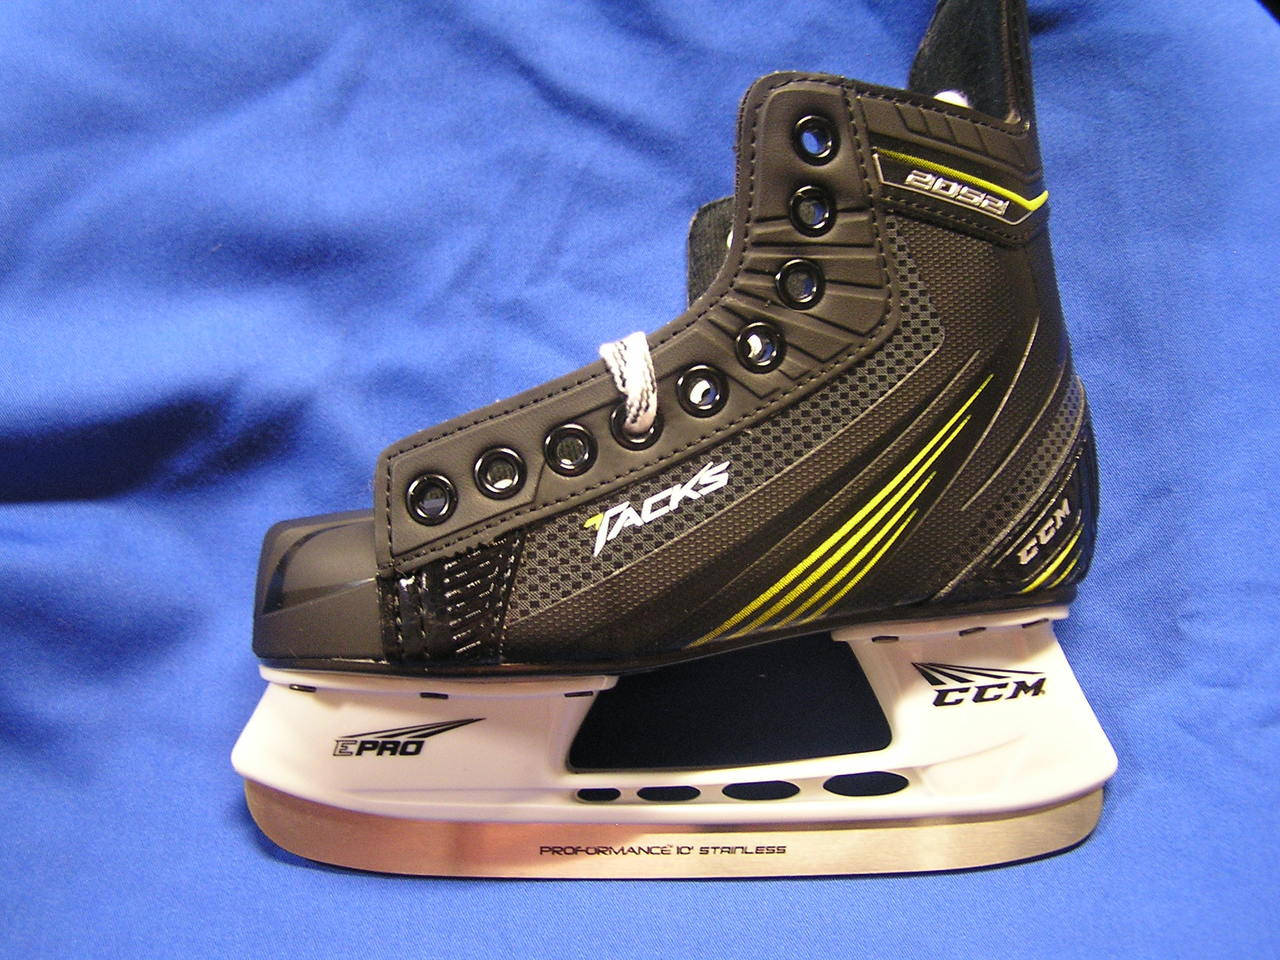 ff7facdbc31 The CCM Tacks 2052 Ice Hockey Skates are the entry level model in the Tacks  Line